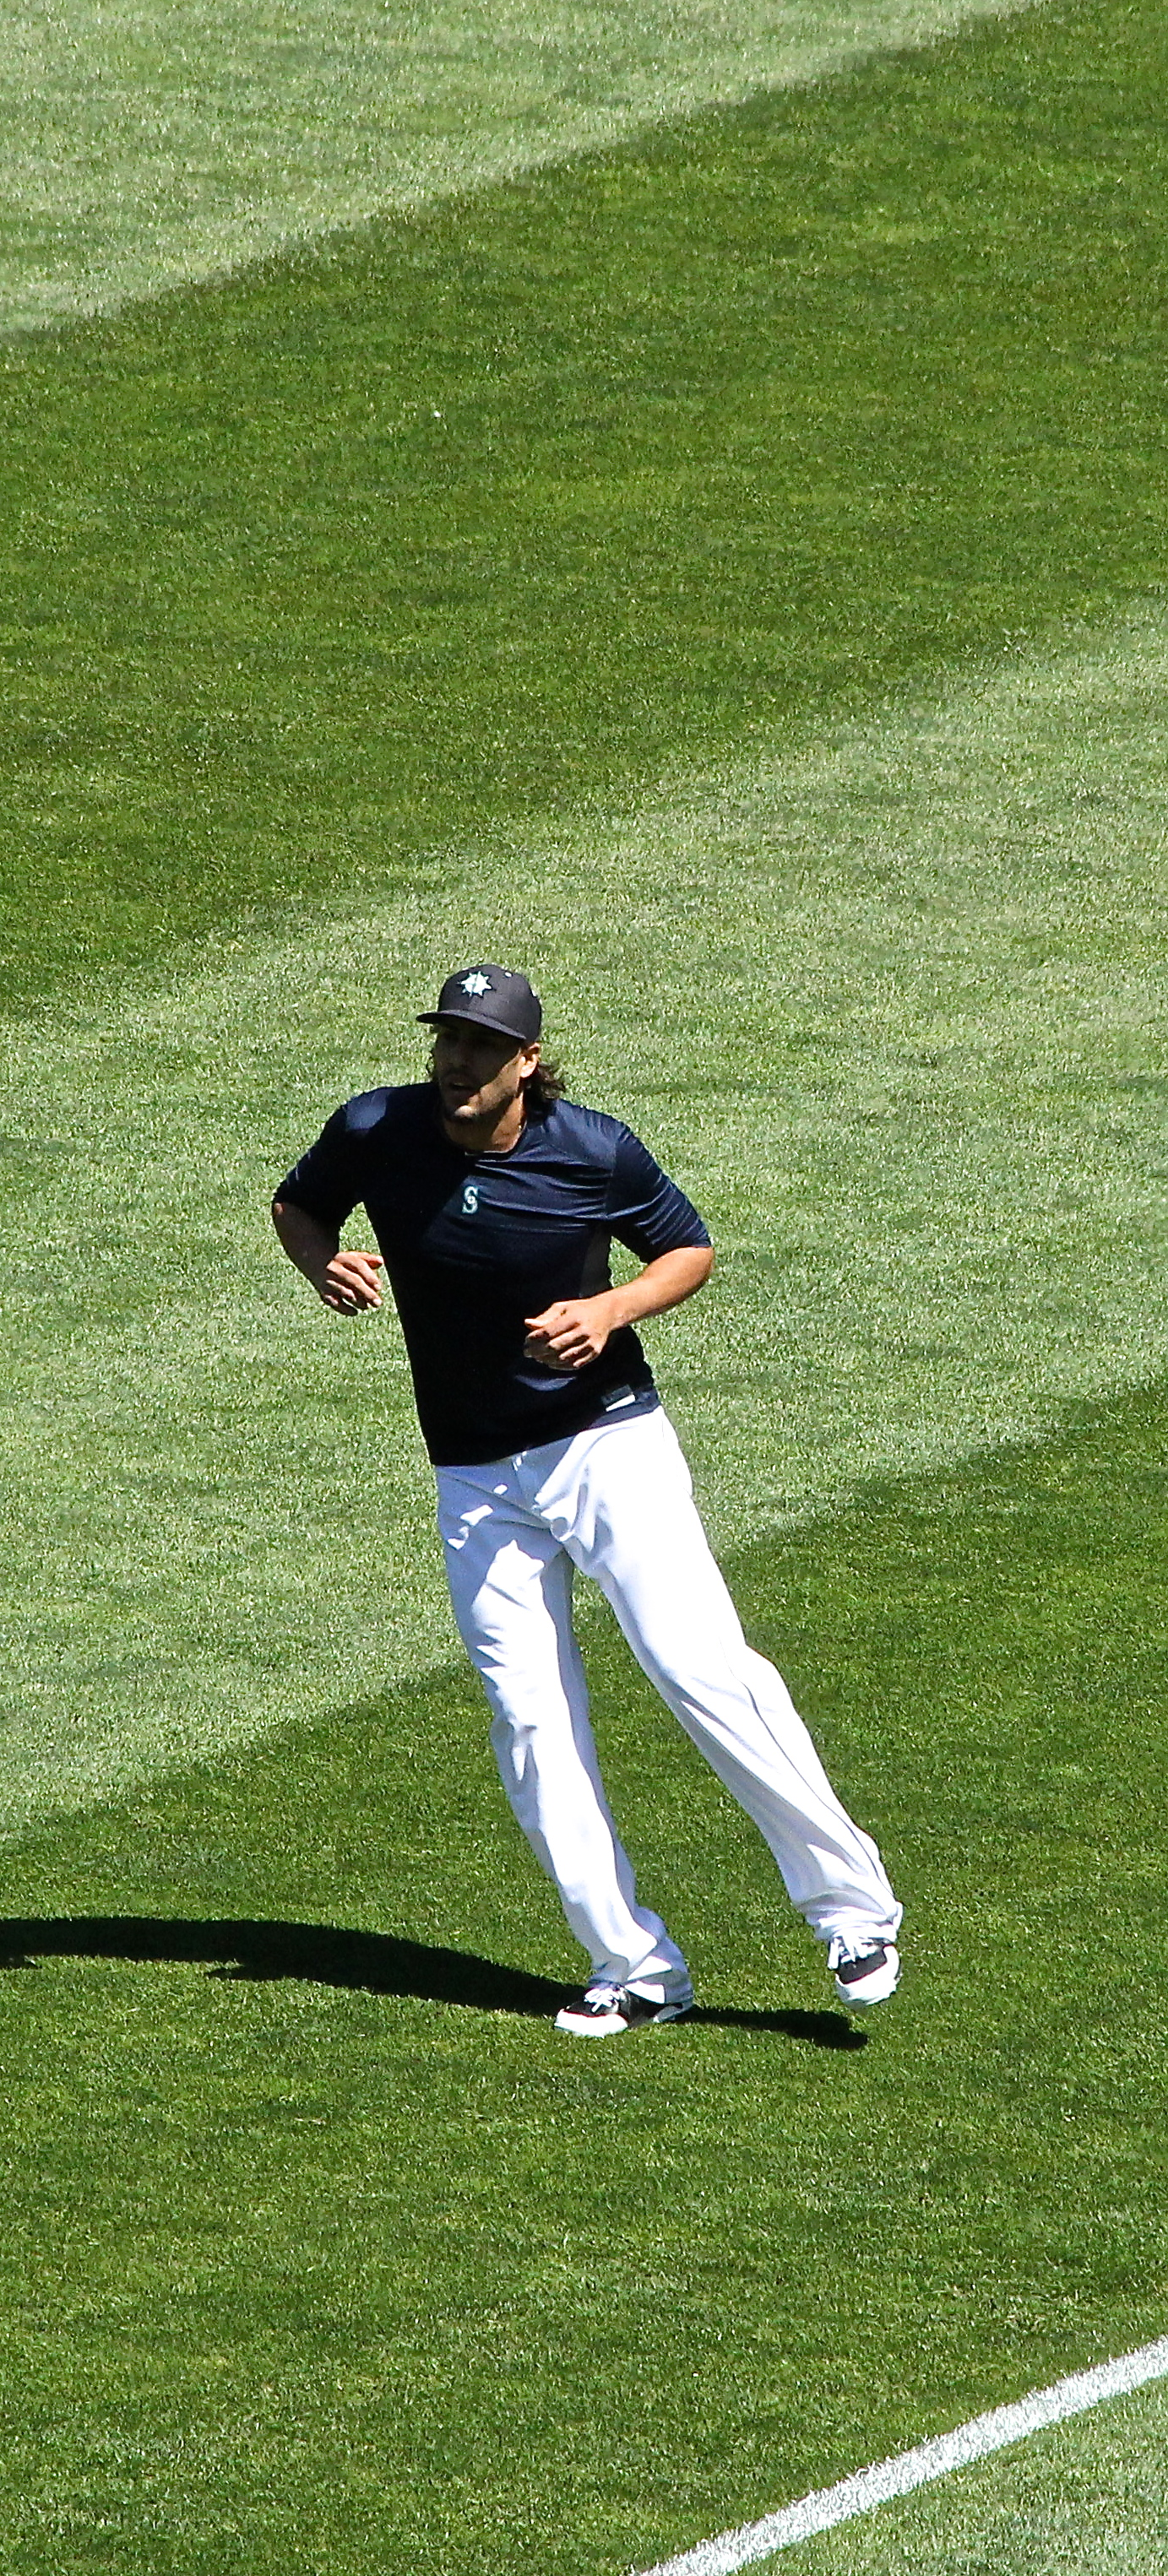 Michael Morse works out in the morning